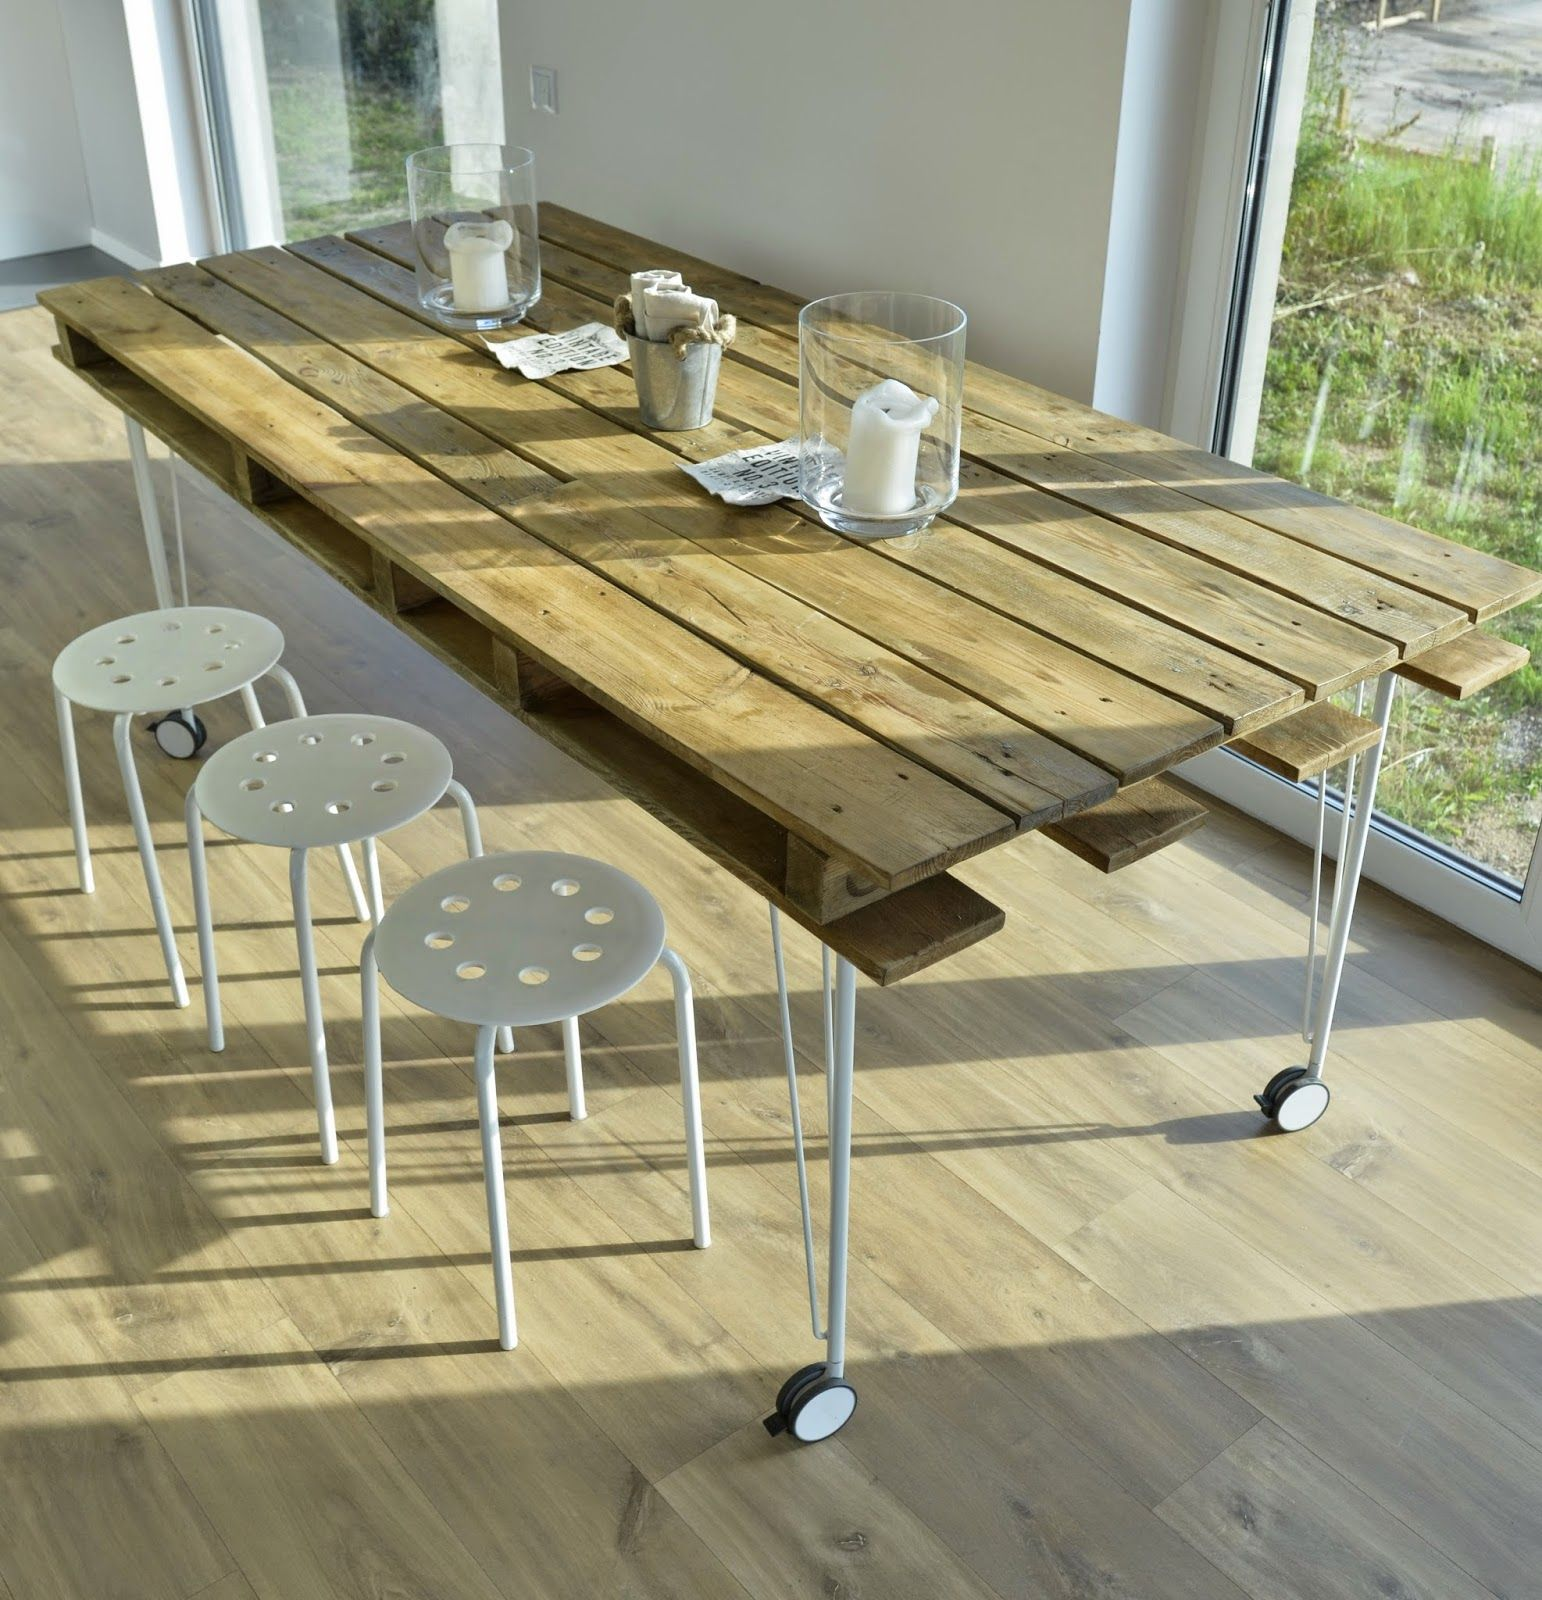 diy pallet outdoor dinning table. HOMEmade MAKEOVERS: IDEAS BOOK - DIY PALLET DINING TABLE Diy Pallet Outdoor Dinning Table